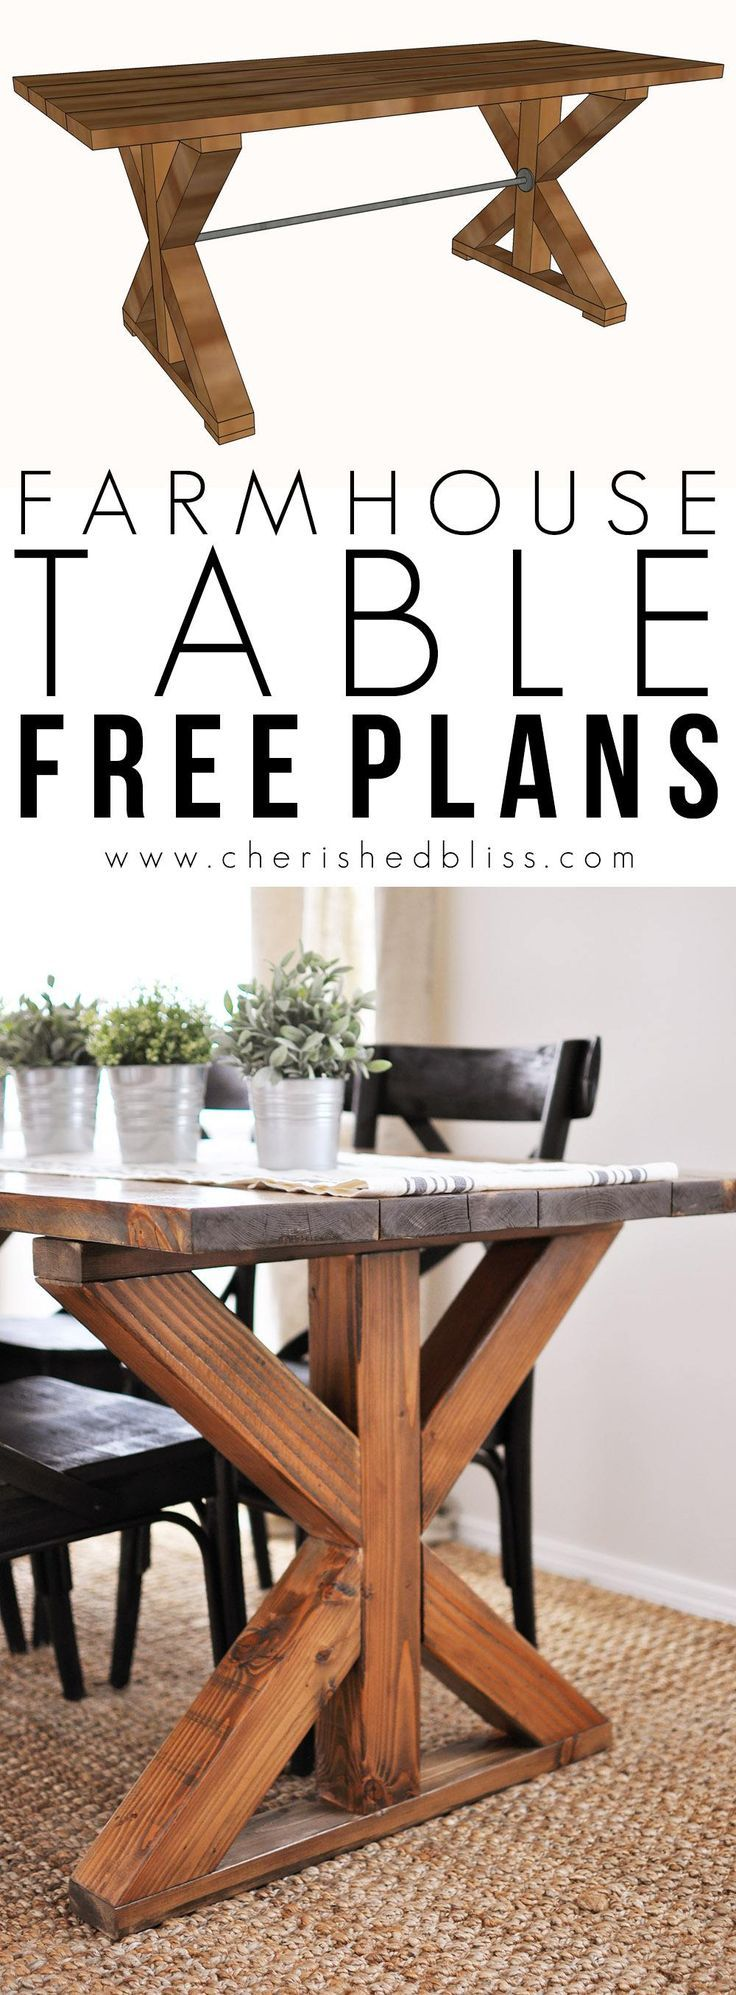 X Farmhouse Table | 15 Easy DIY Reclaimed Wood Projects | Dining ...